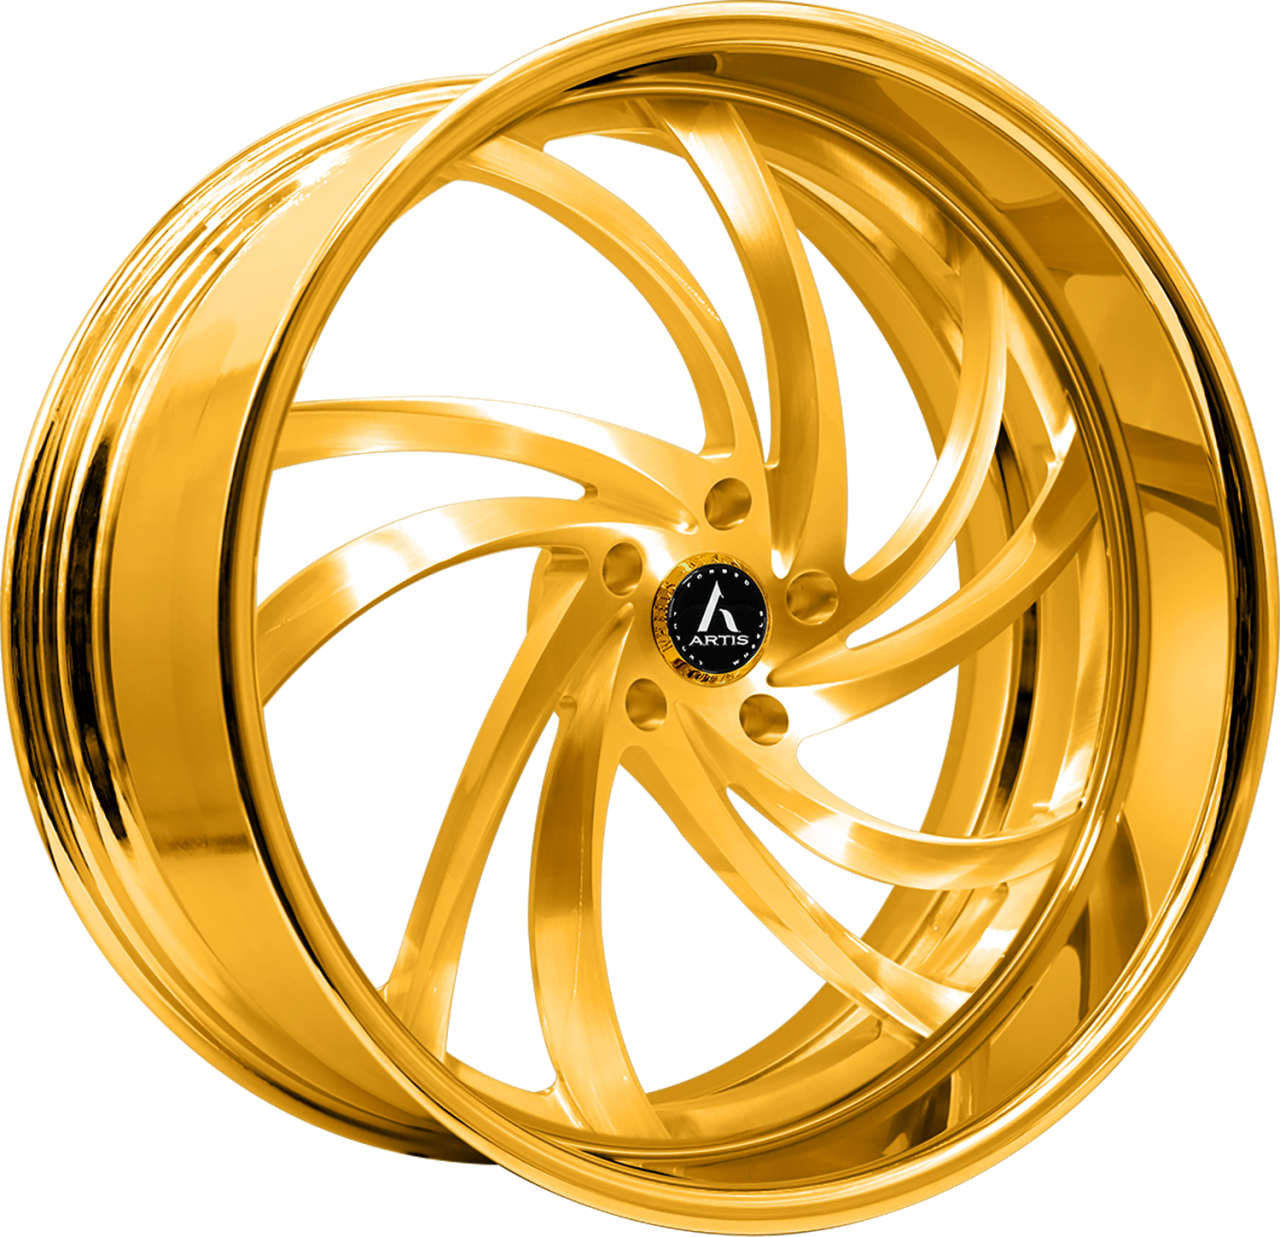 Artis Forged Twister-M wheel with Gold finish